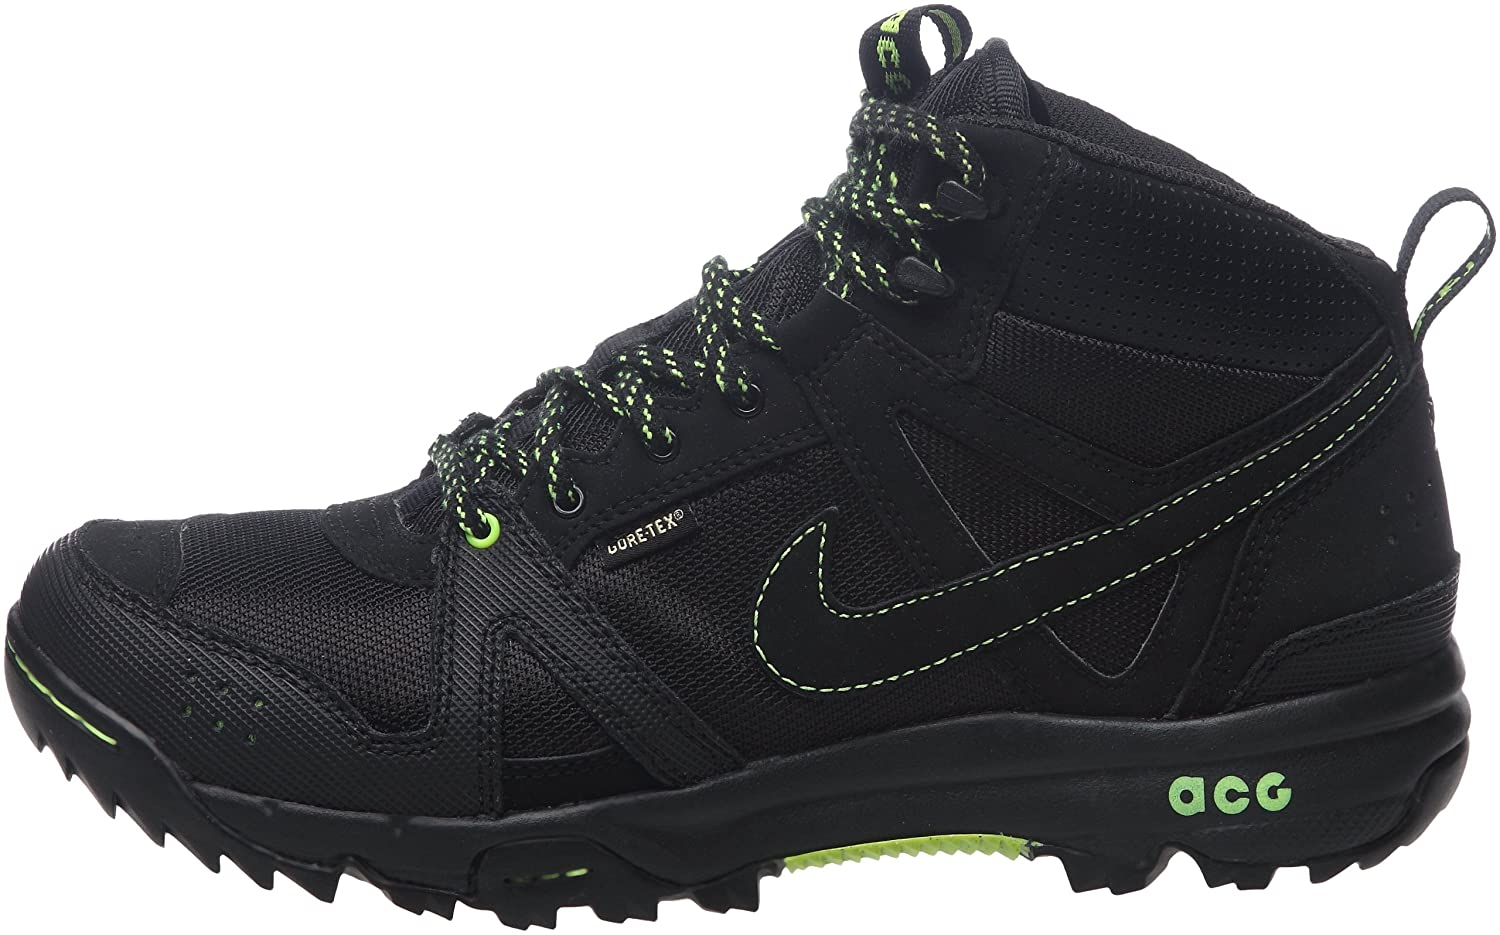 lowest price 783e1 78398 norway nike acg rongbuk gtx fall winter 2010 collection 8ccab 88d02   australia nike rongbuk mid gtx mens sports shoes men s sports shoes 365657  005 35fad ...